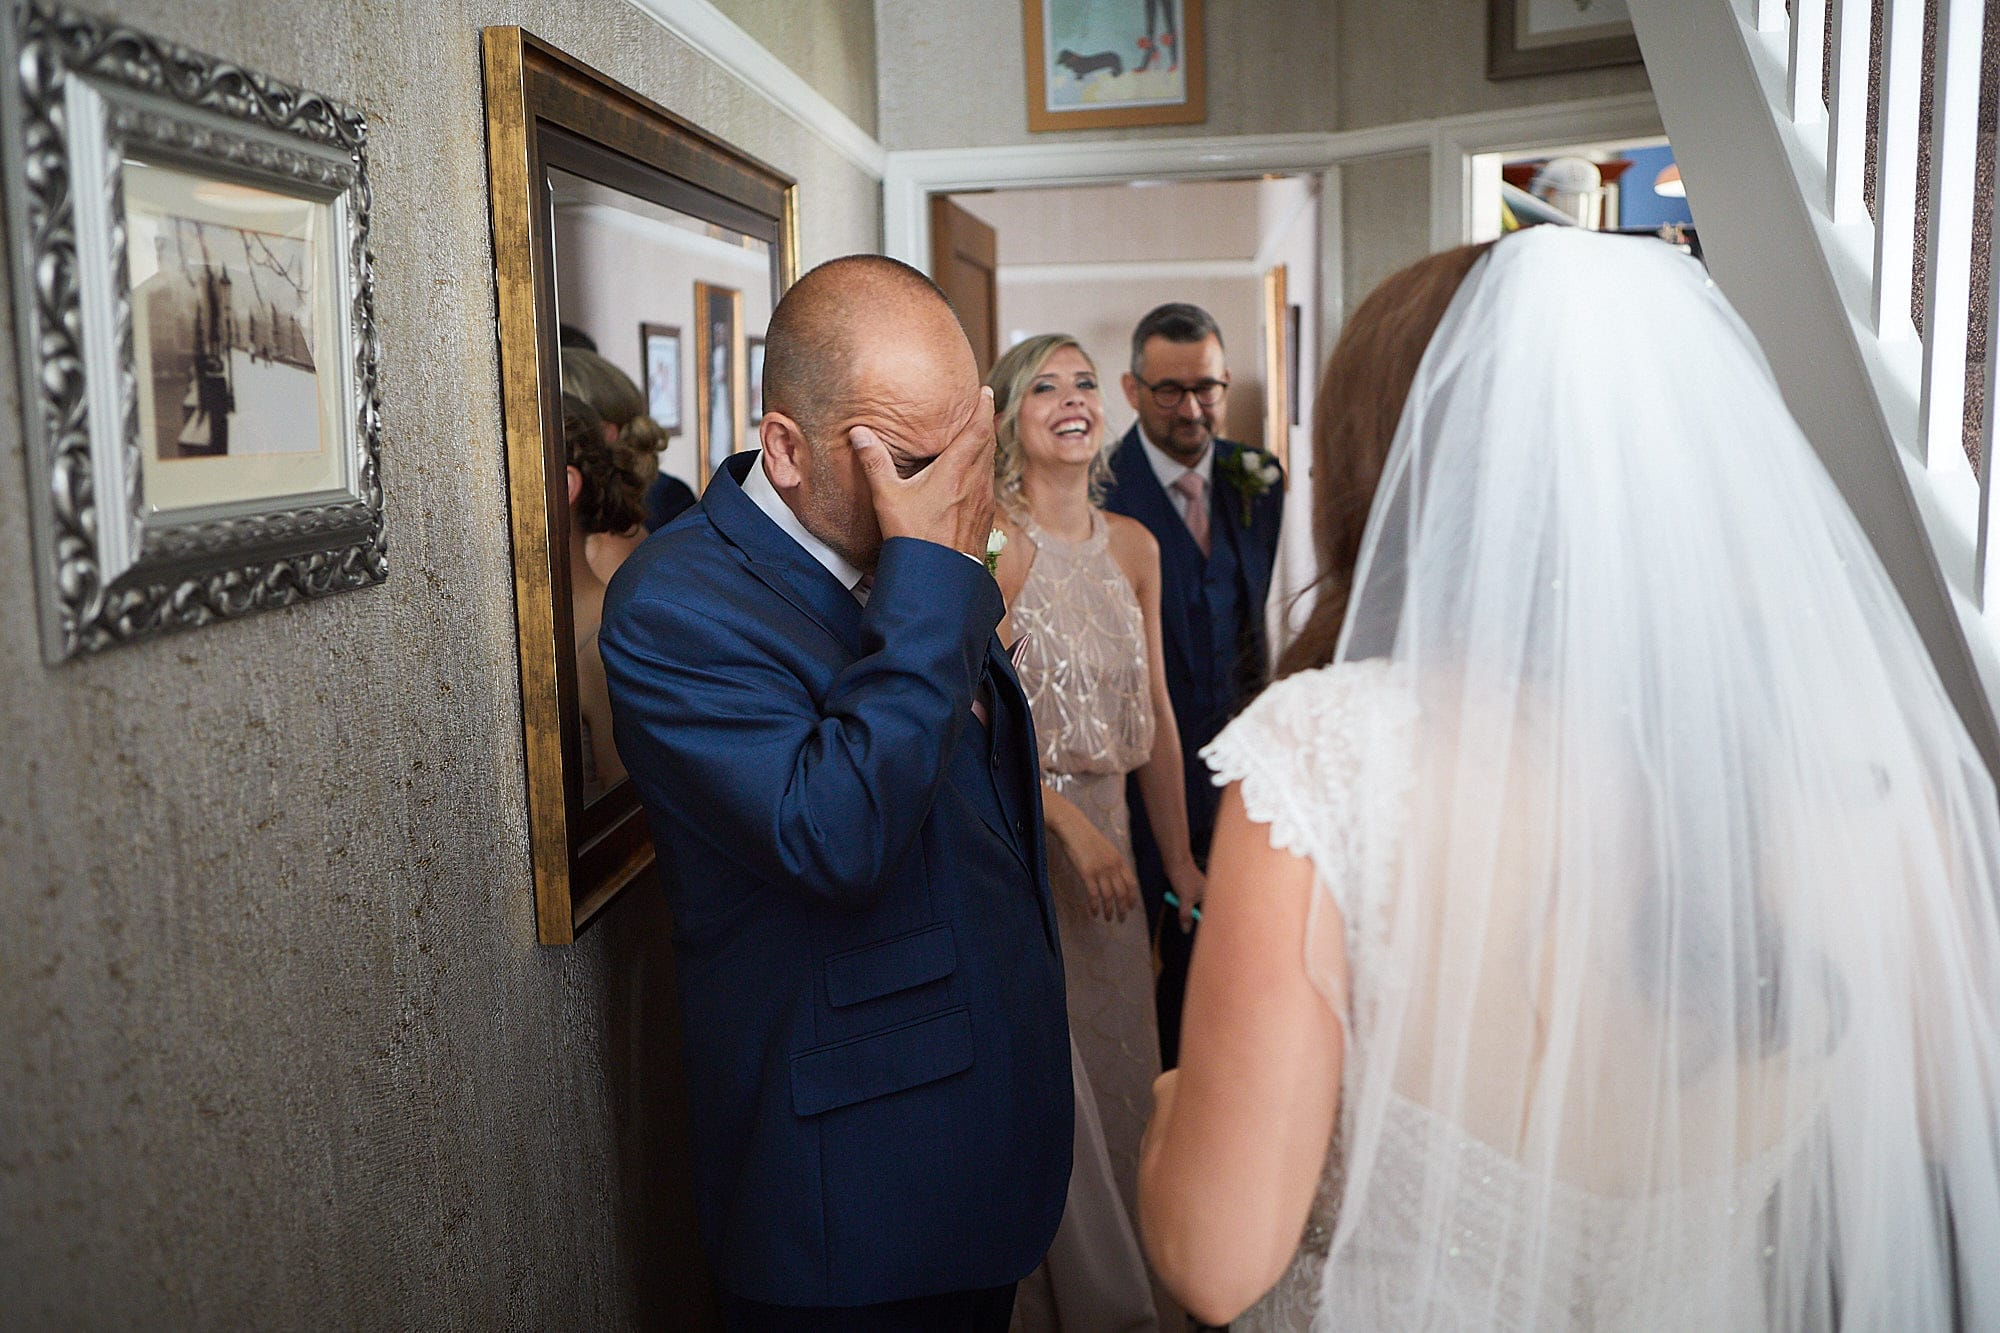 father struggles to contain his emotions as he sees his daughter in her wedding dress for the first time.